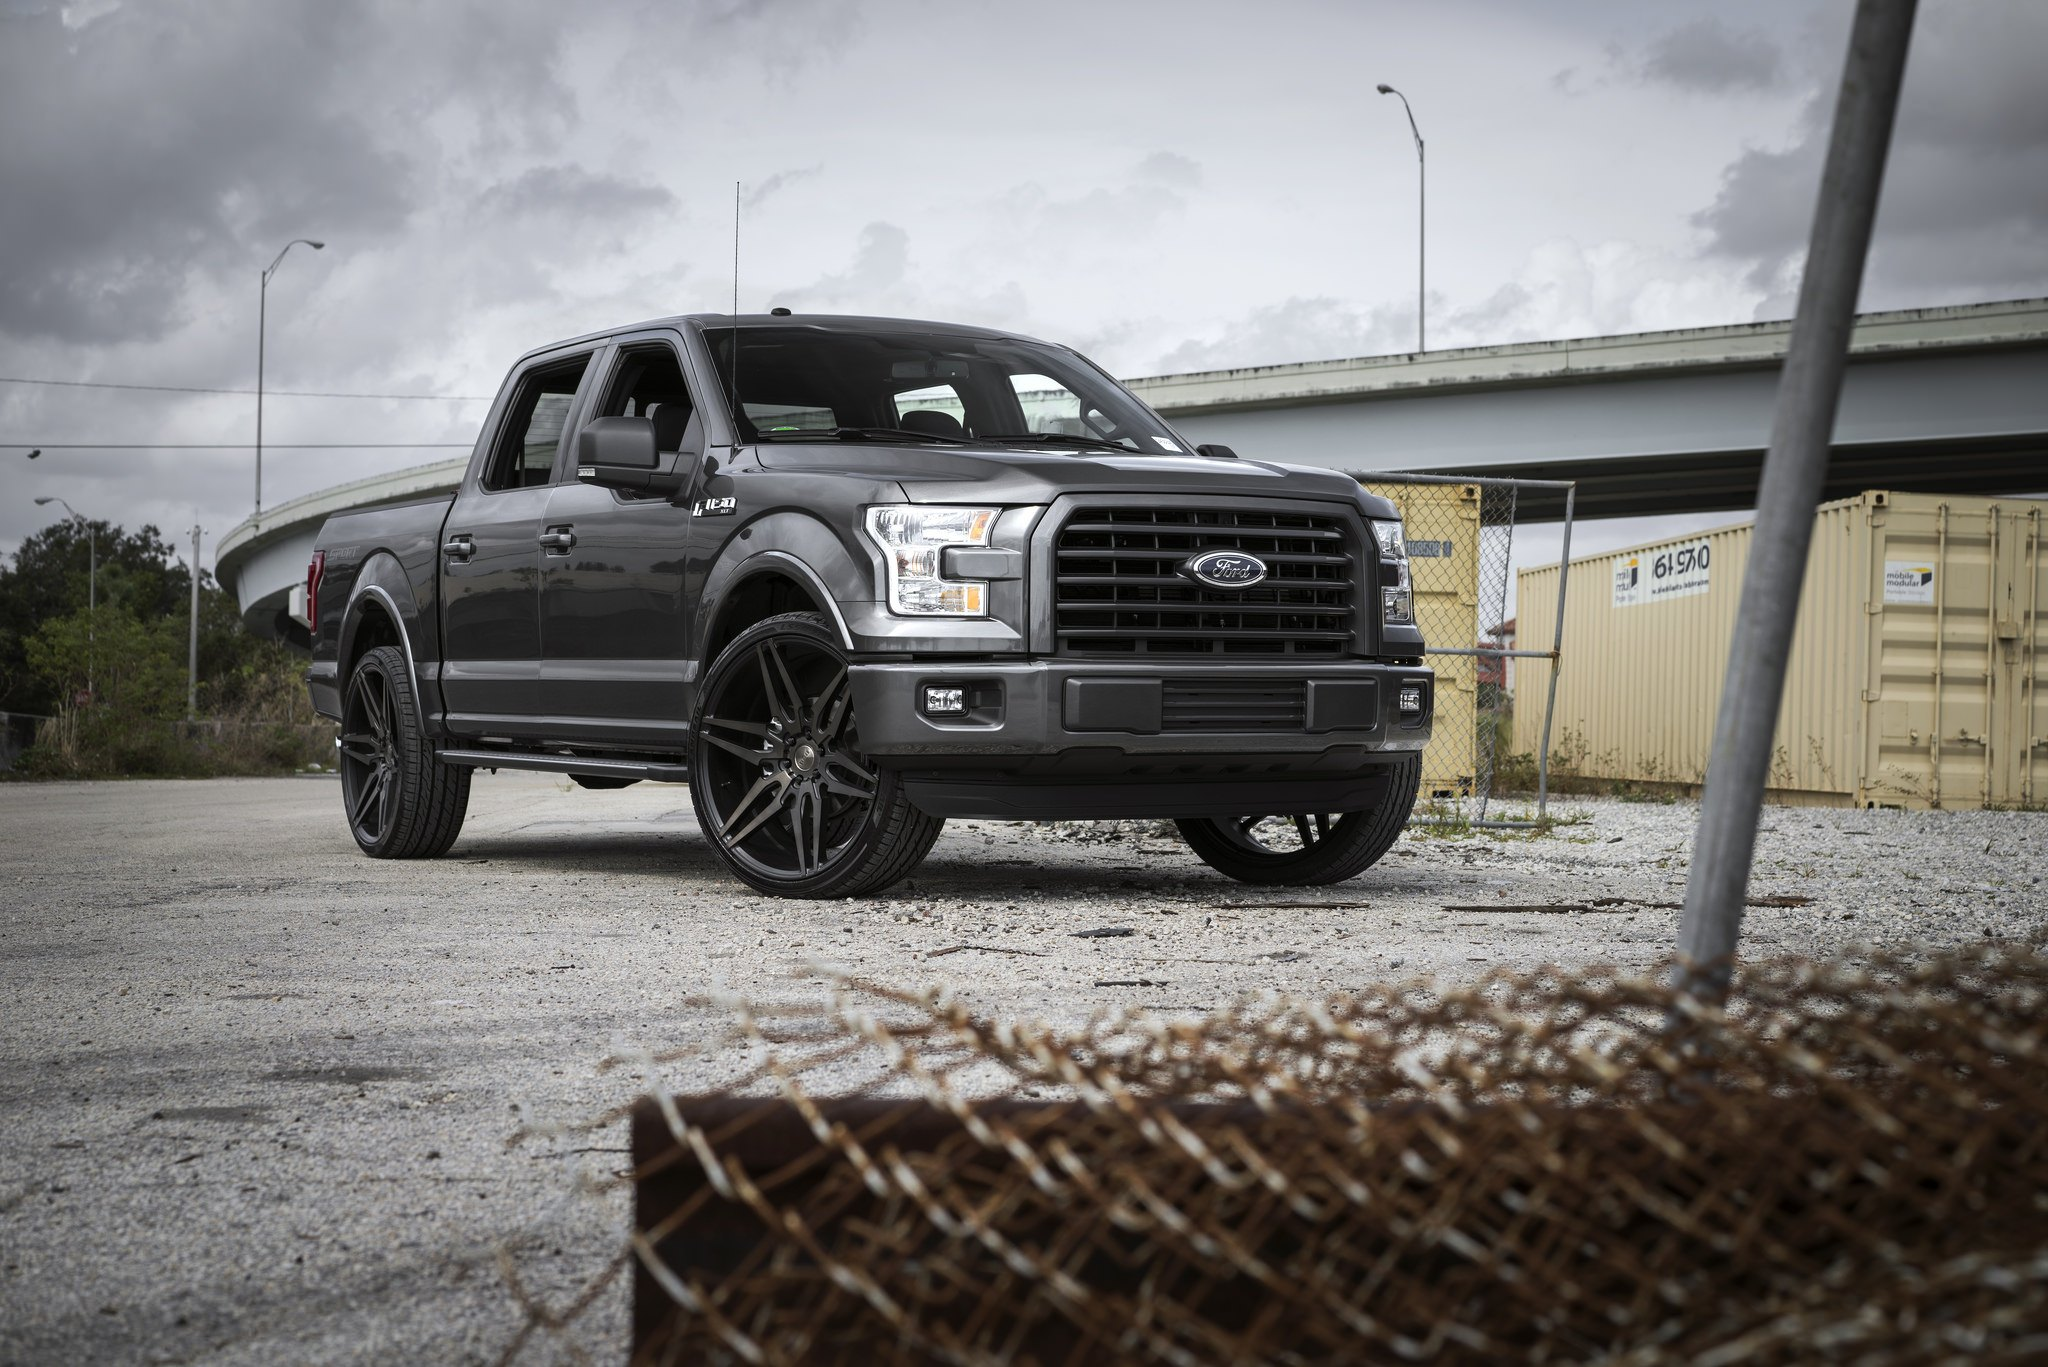 Black Ford Fusion Black Rims >> Custom 2017 Ford F-150 | Images, Mods, Photos, Upgrades — CARiD.com Gallery